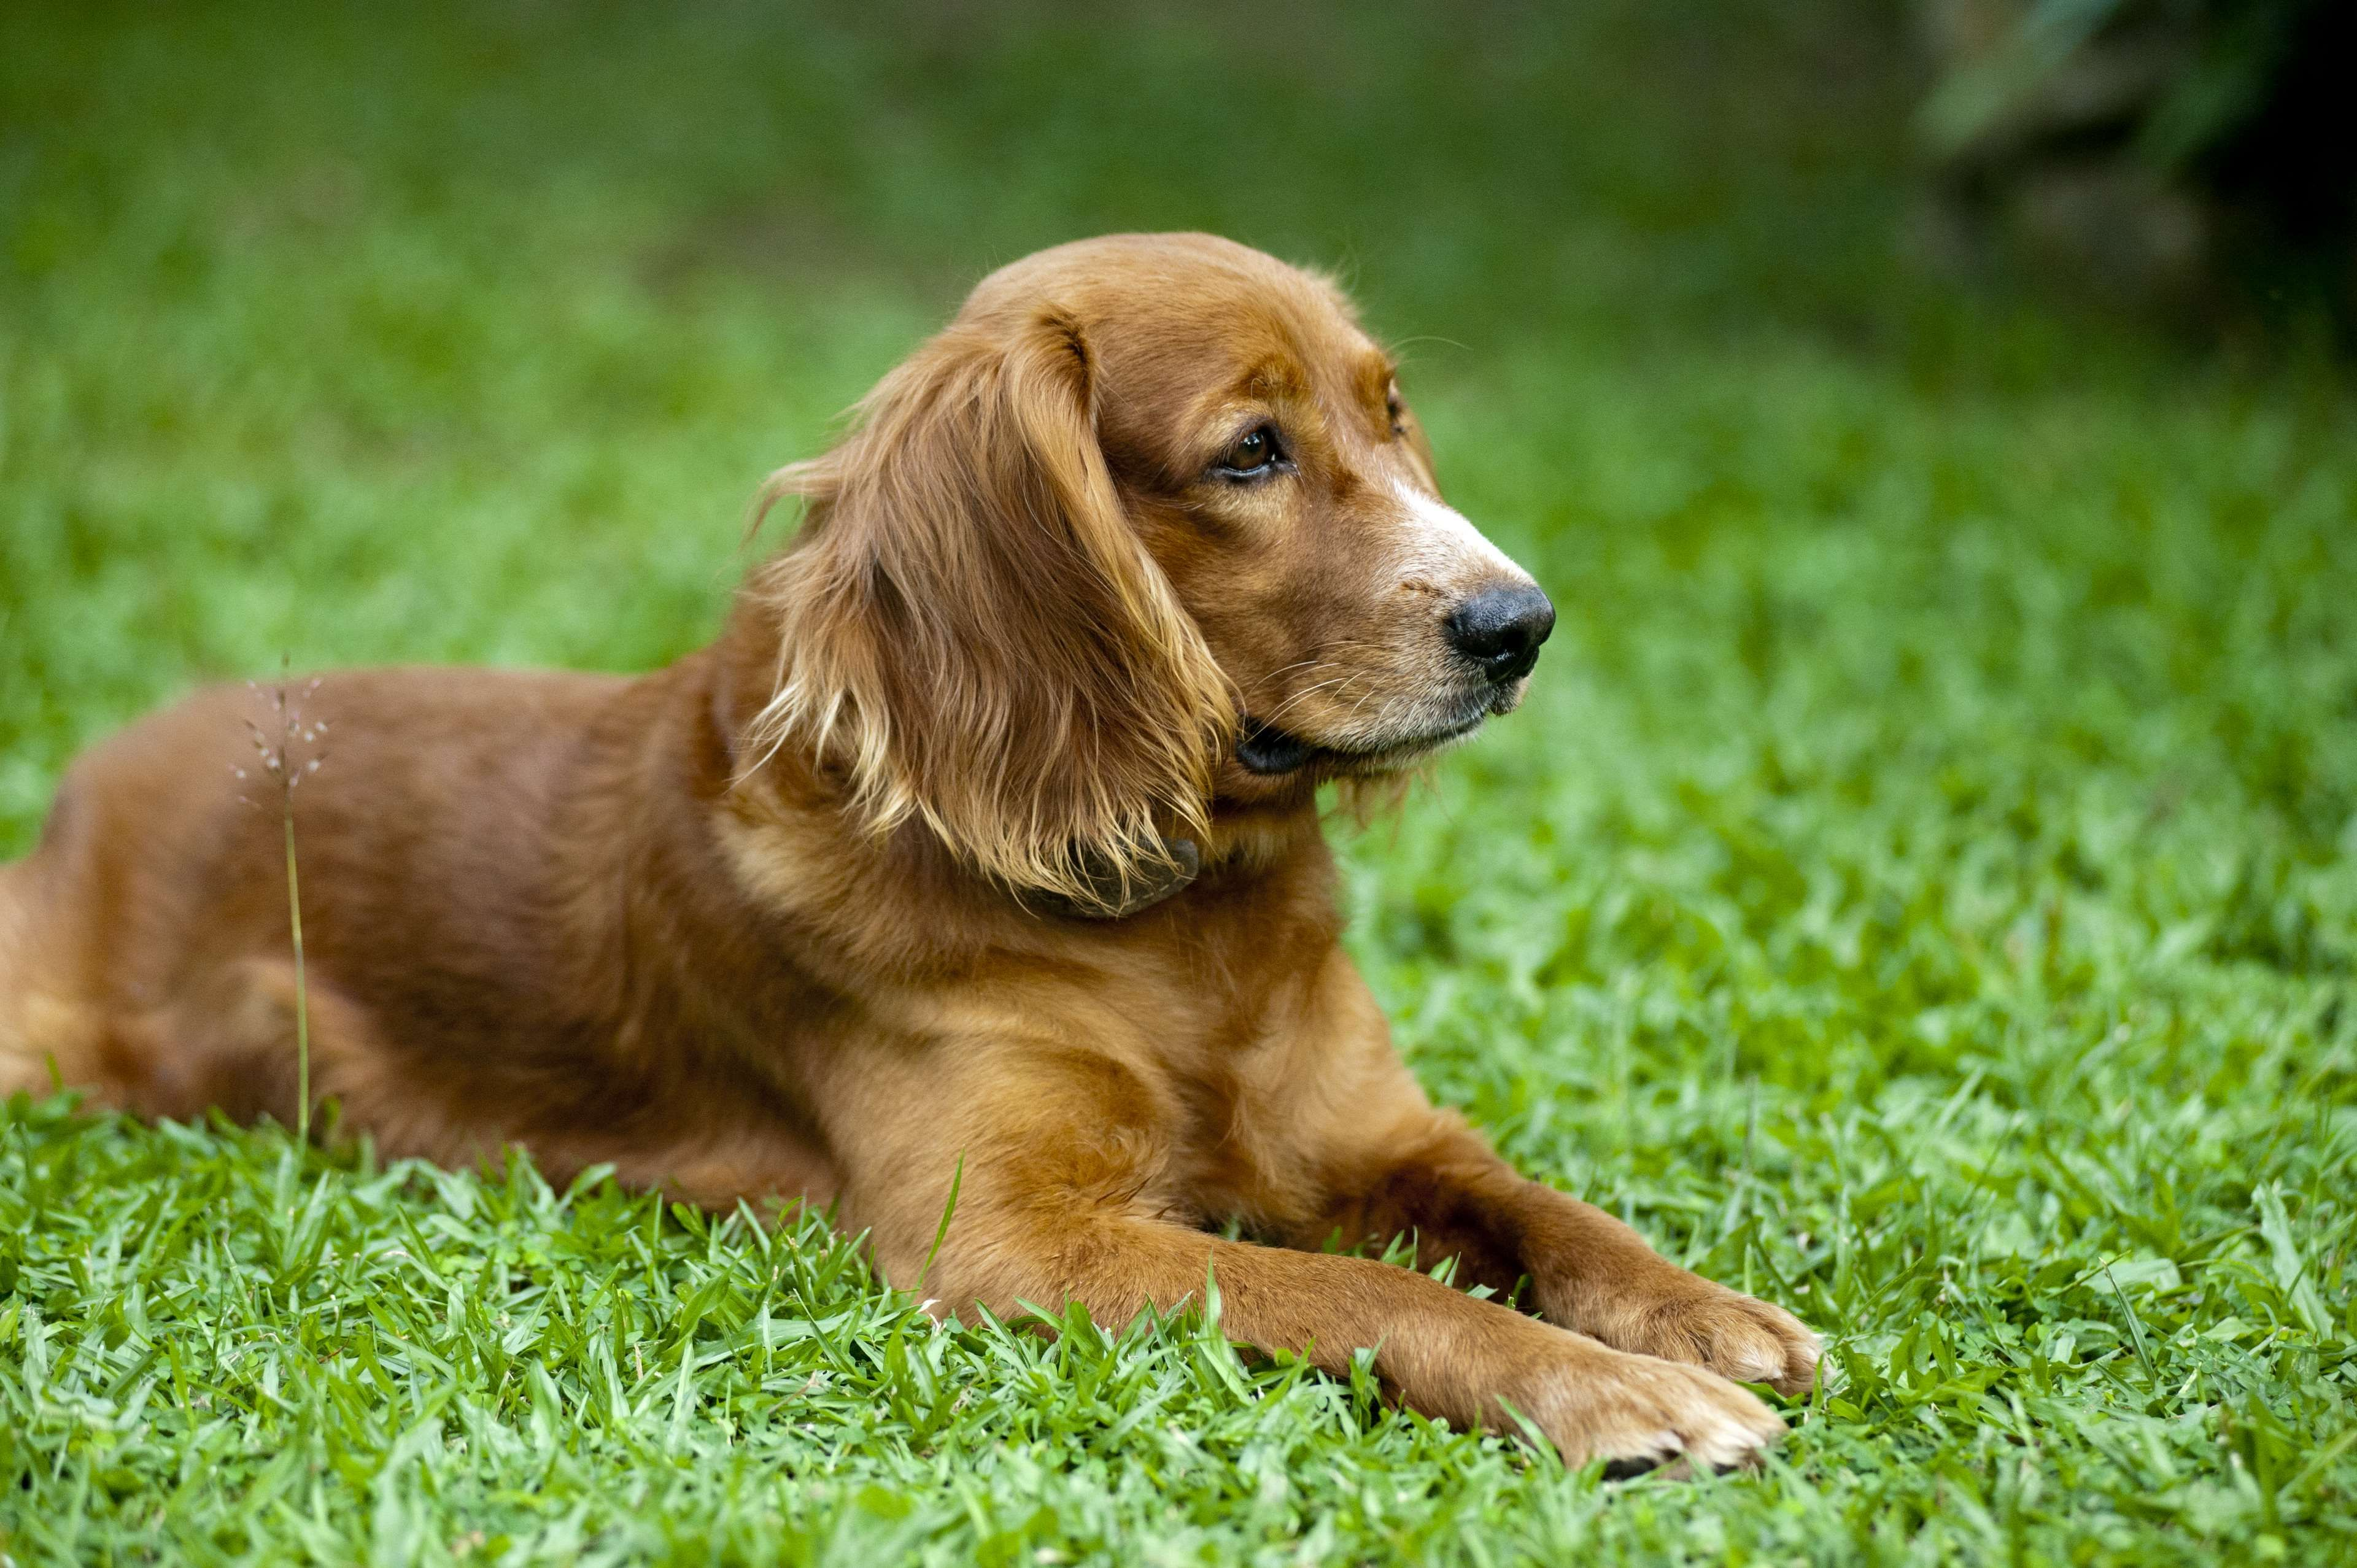 Popular Spaniel Canine Adorable Dog - 10673d1f65c97b8fa00f4be7f9a99aa2  You Should Have_973559  .jpg